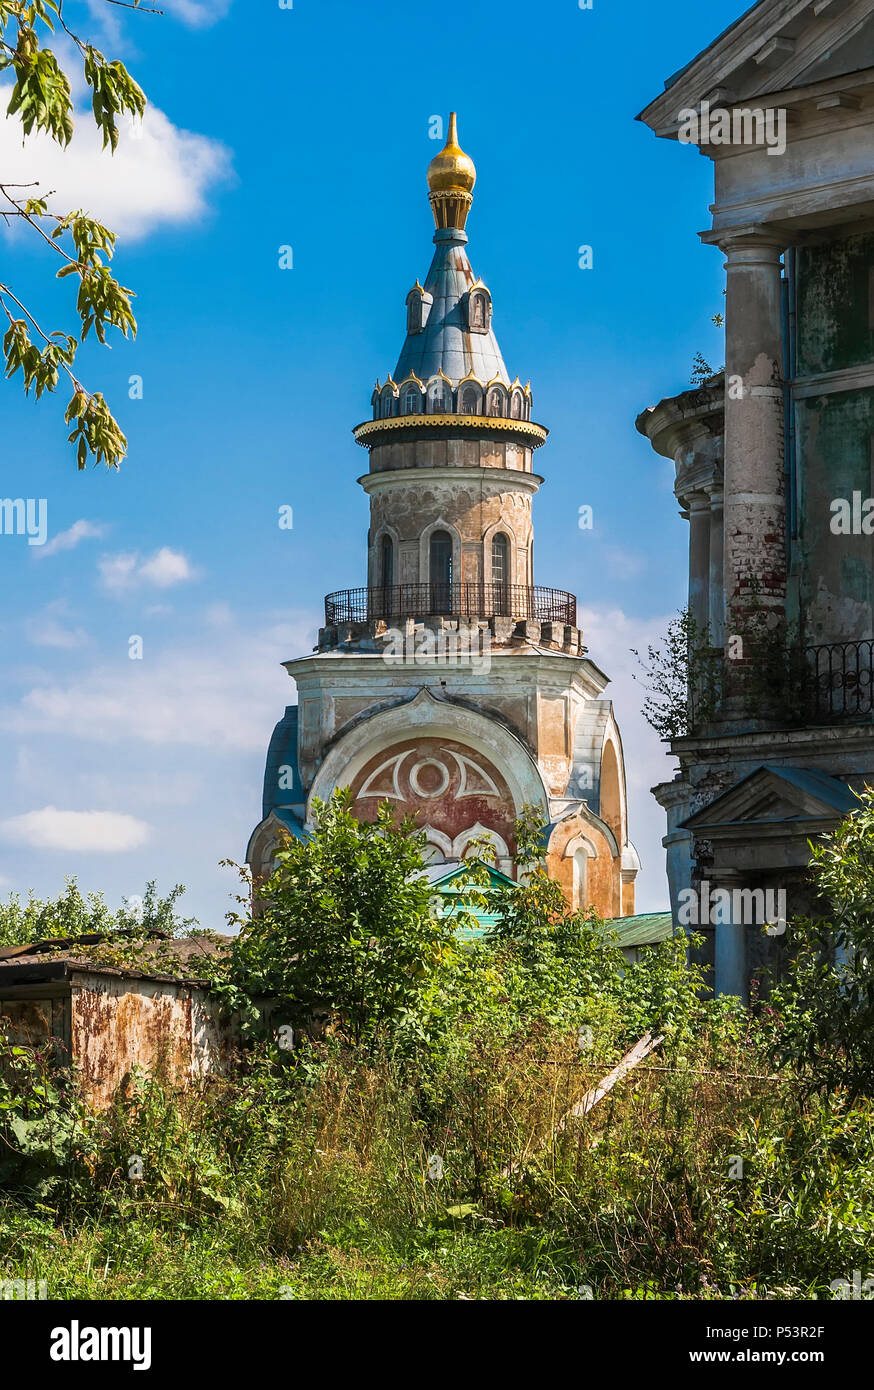 One of the towers of Boris and Gleb Monastery. Torzhok. Russia - Stock Image